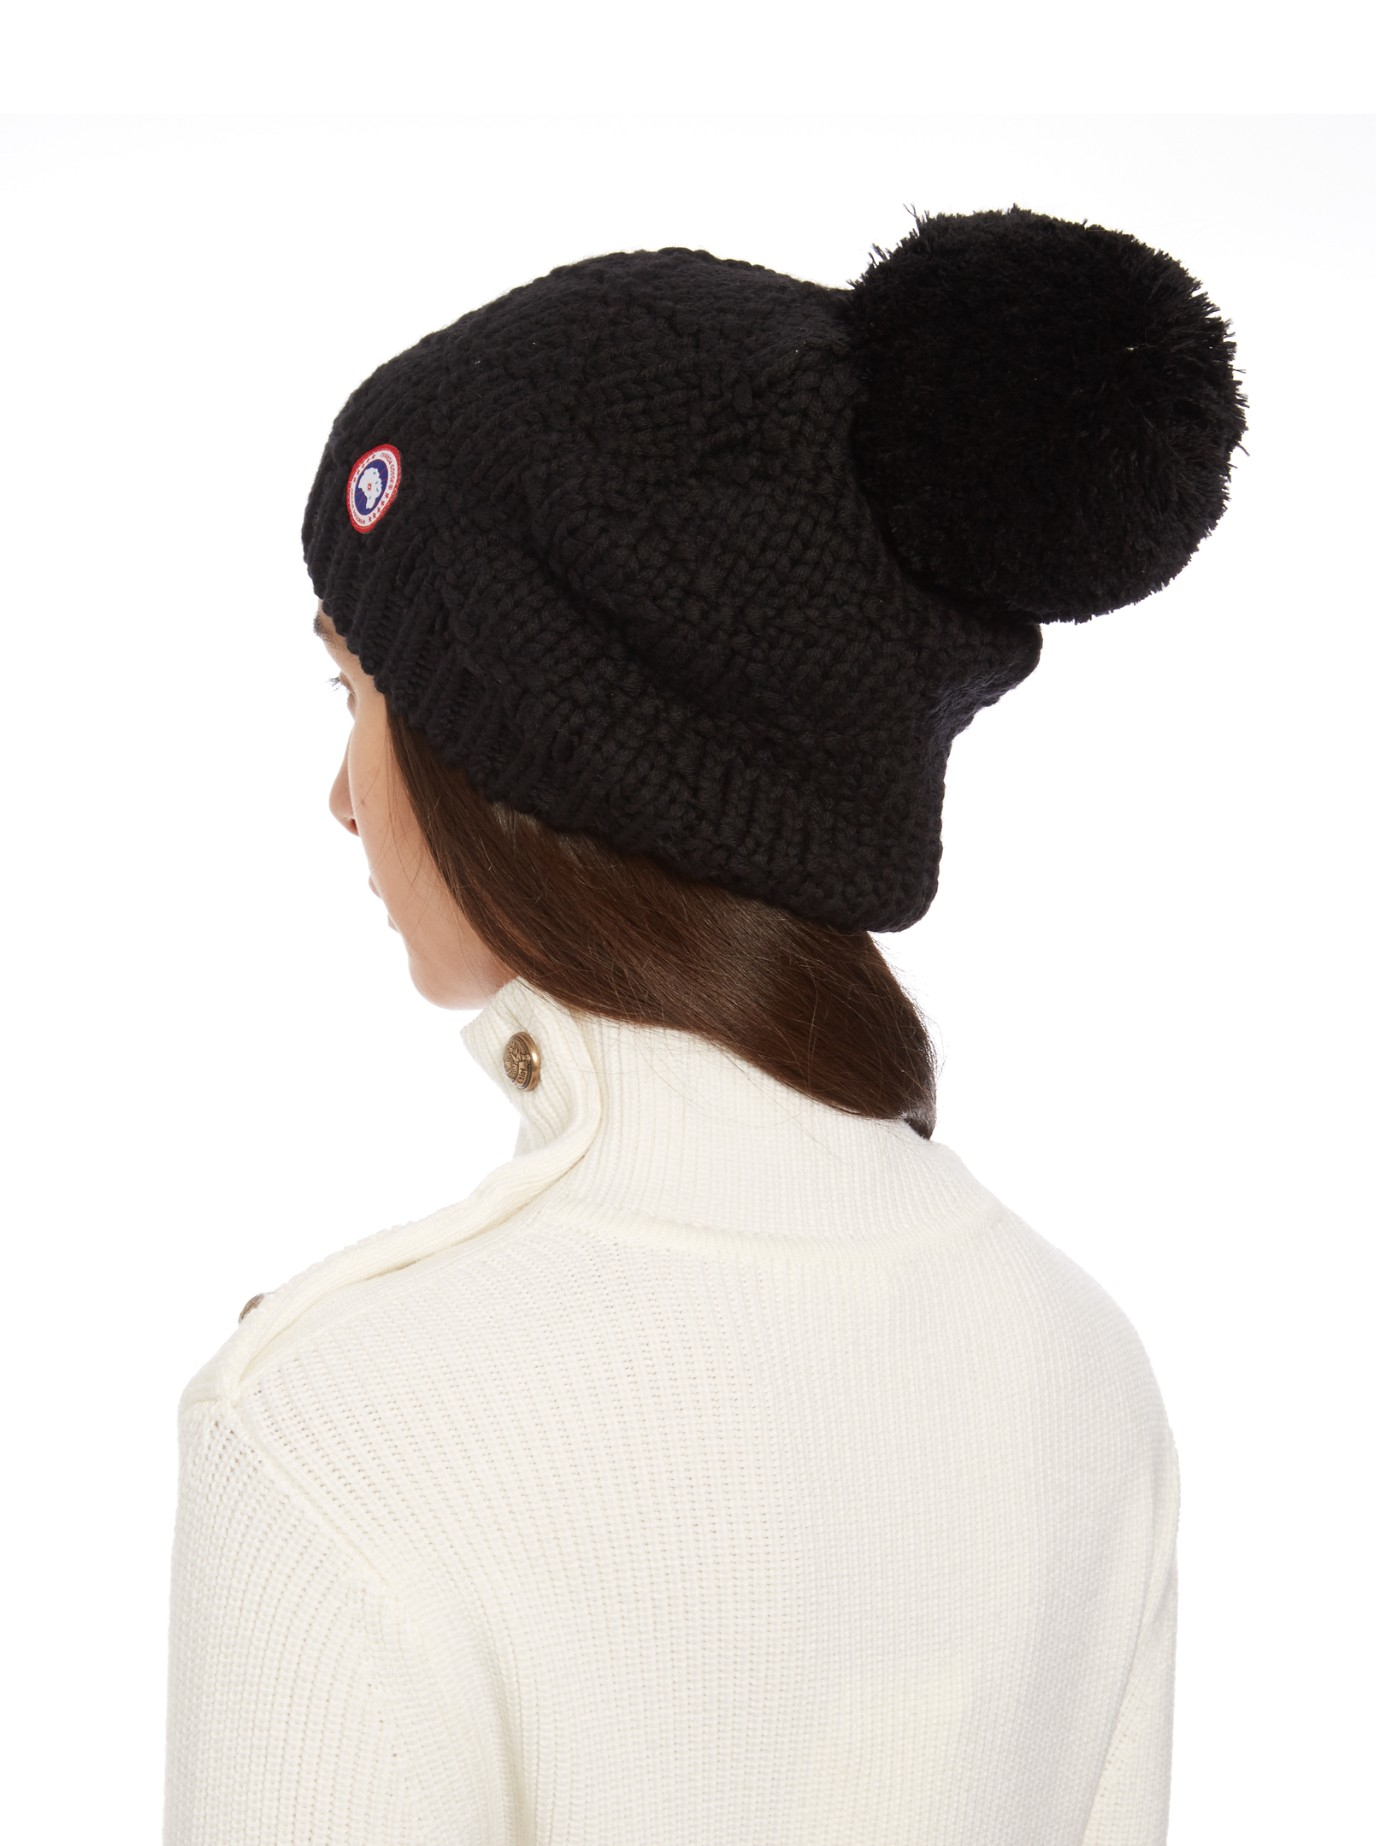 Canada Goose Pompom Cable Knit Beanie Hat in Black - Lyst 4f67915666fc